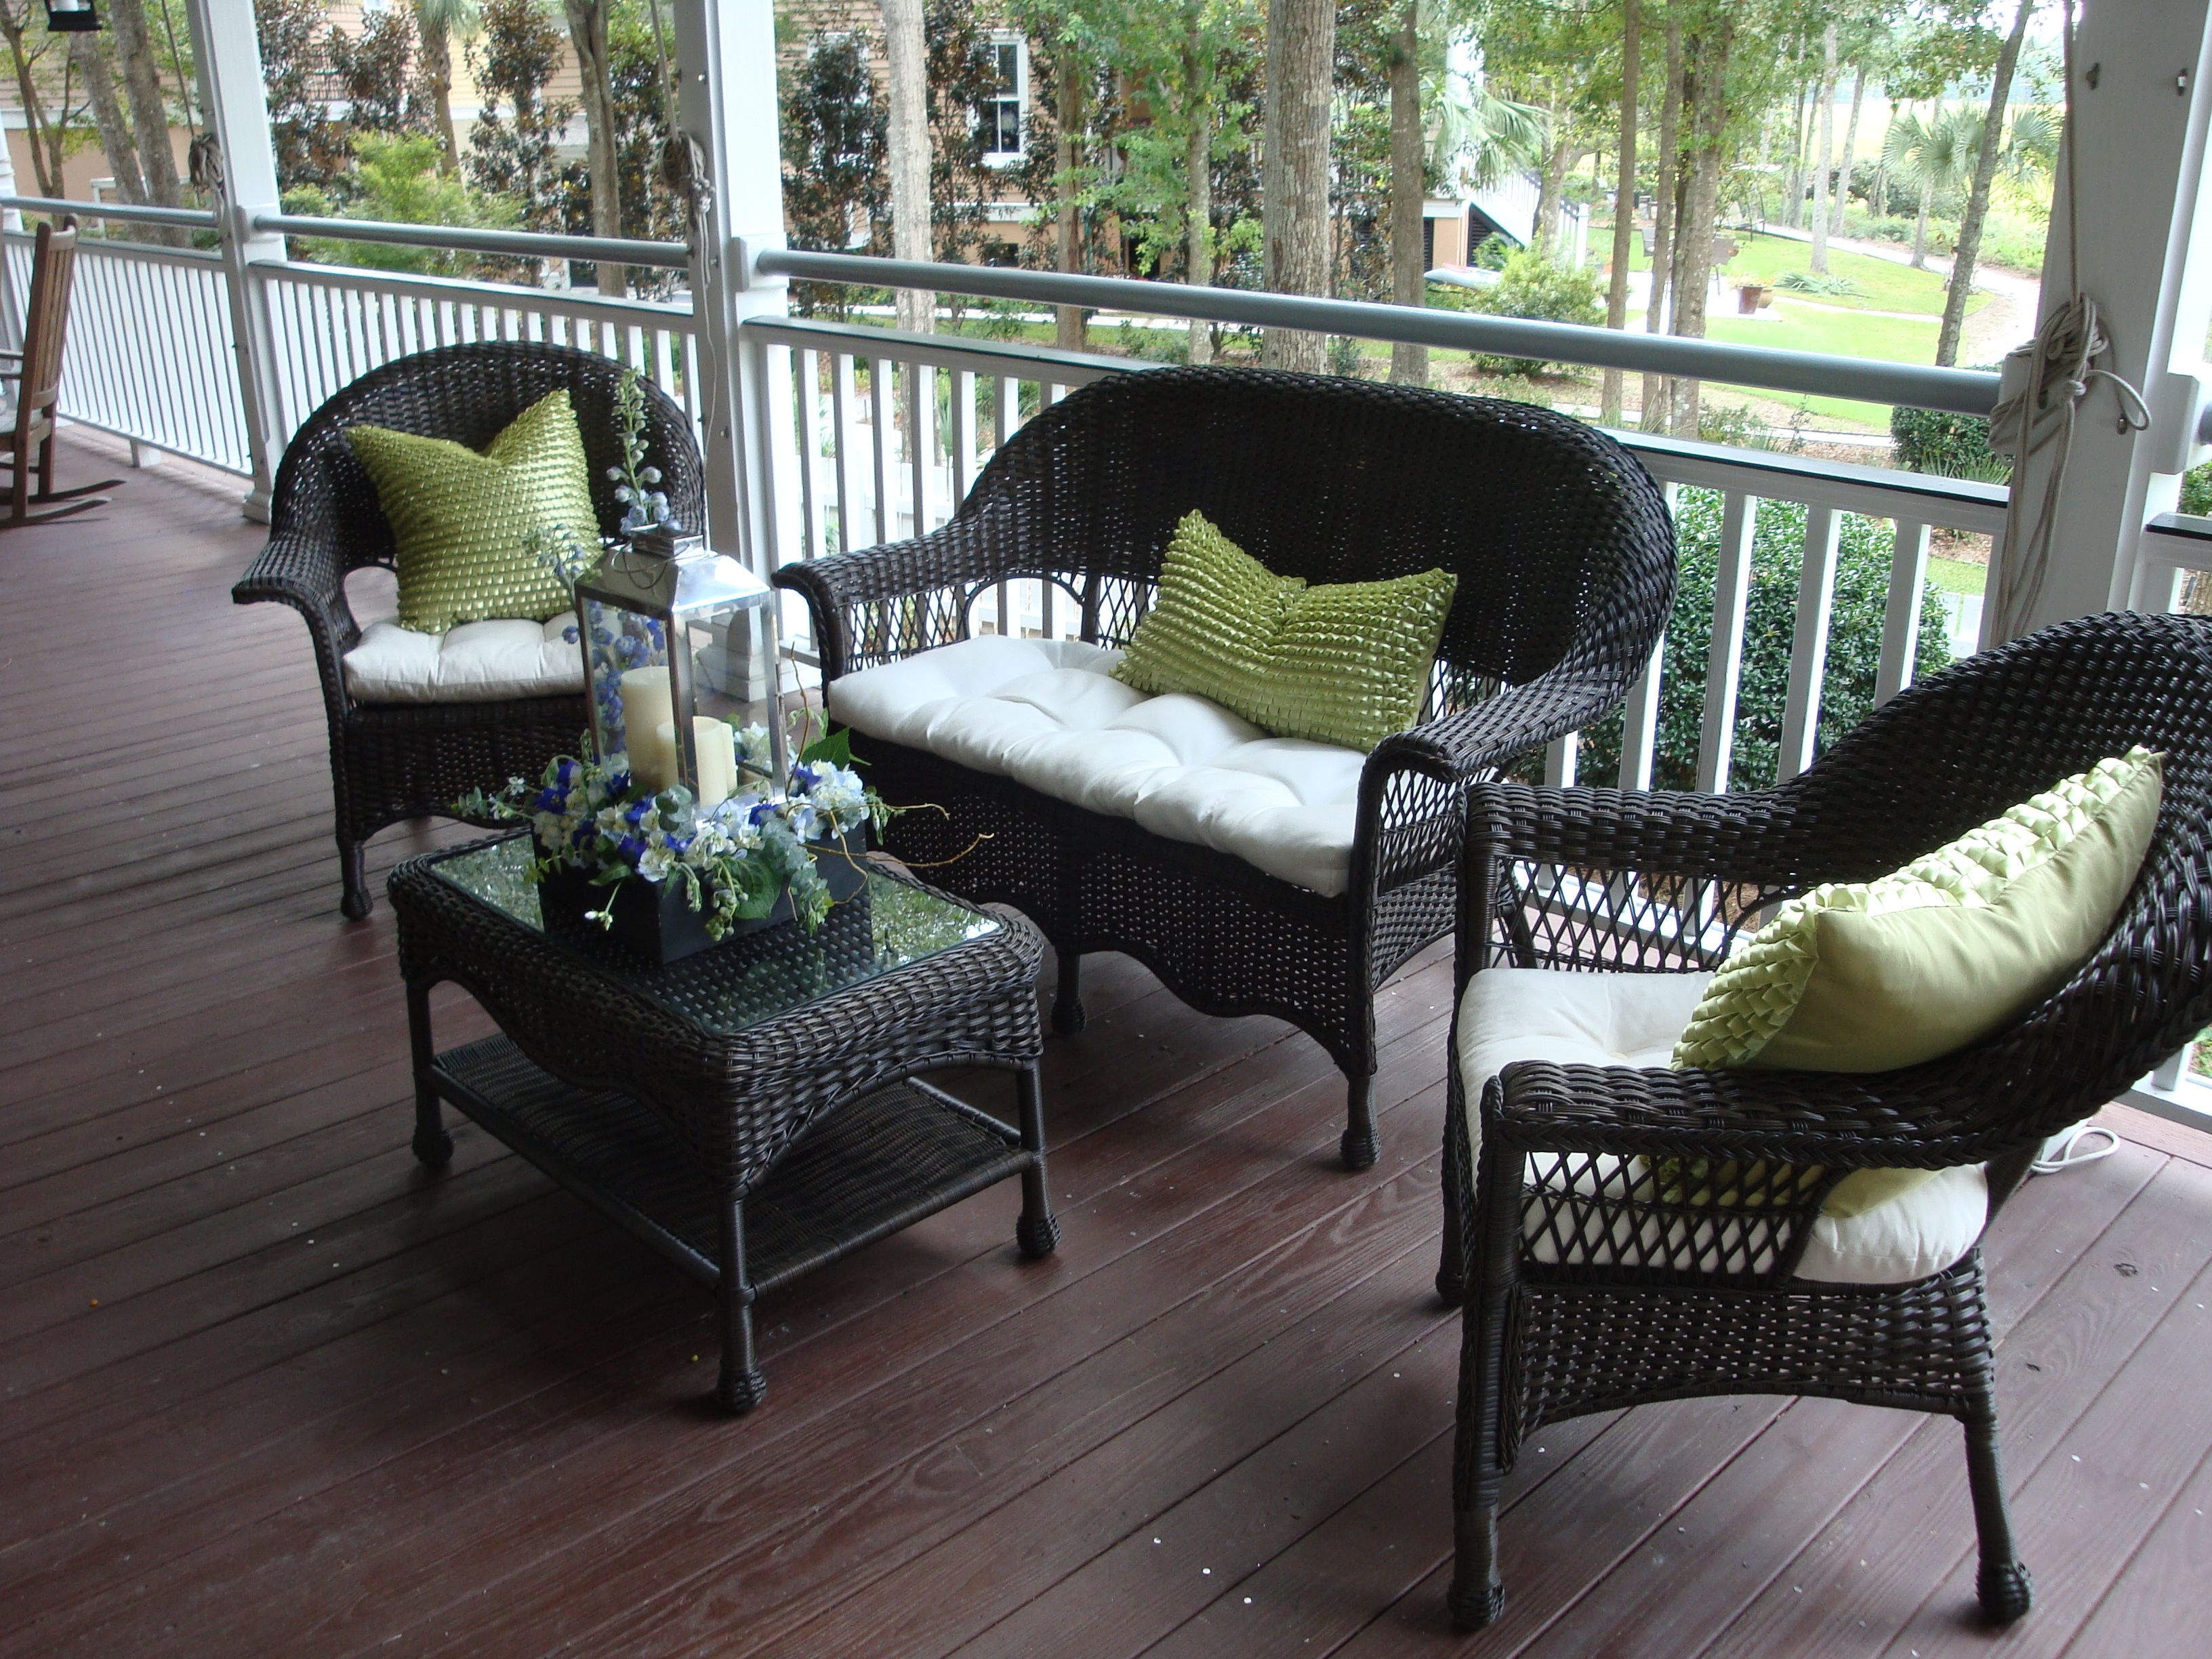 Wicker Furniture Rentals JW Weddings And Events Charleston, SC